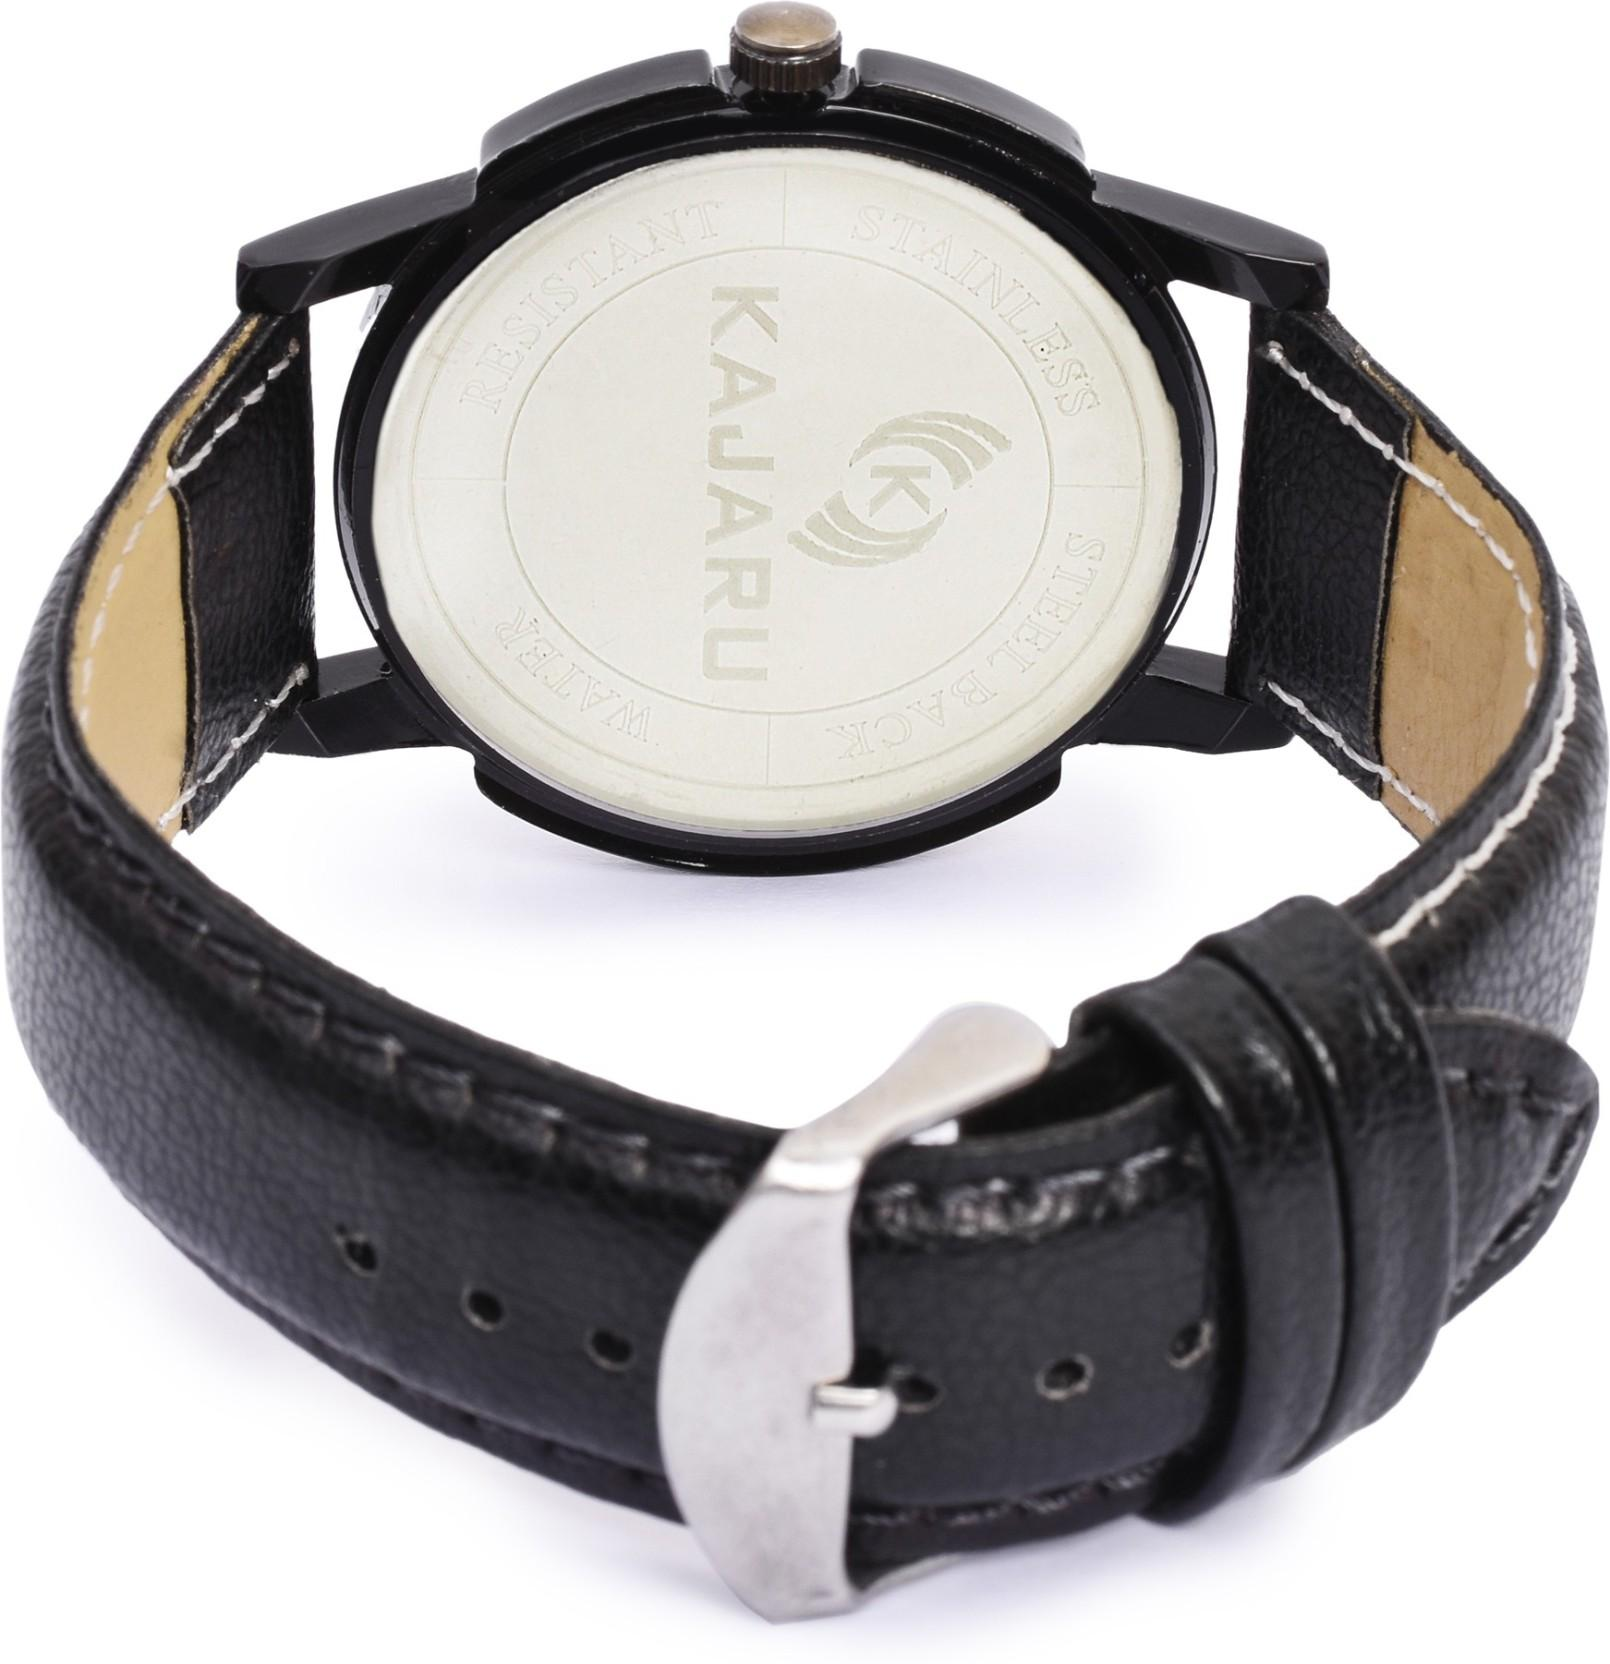 KAJARU KJR-5 BLACK DIAL Watch - For Men